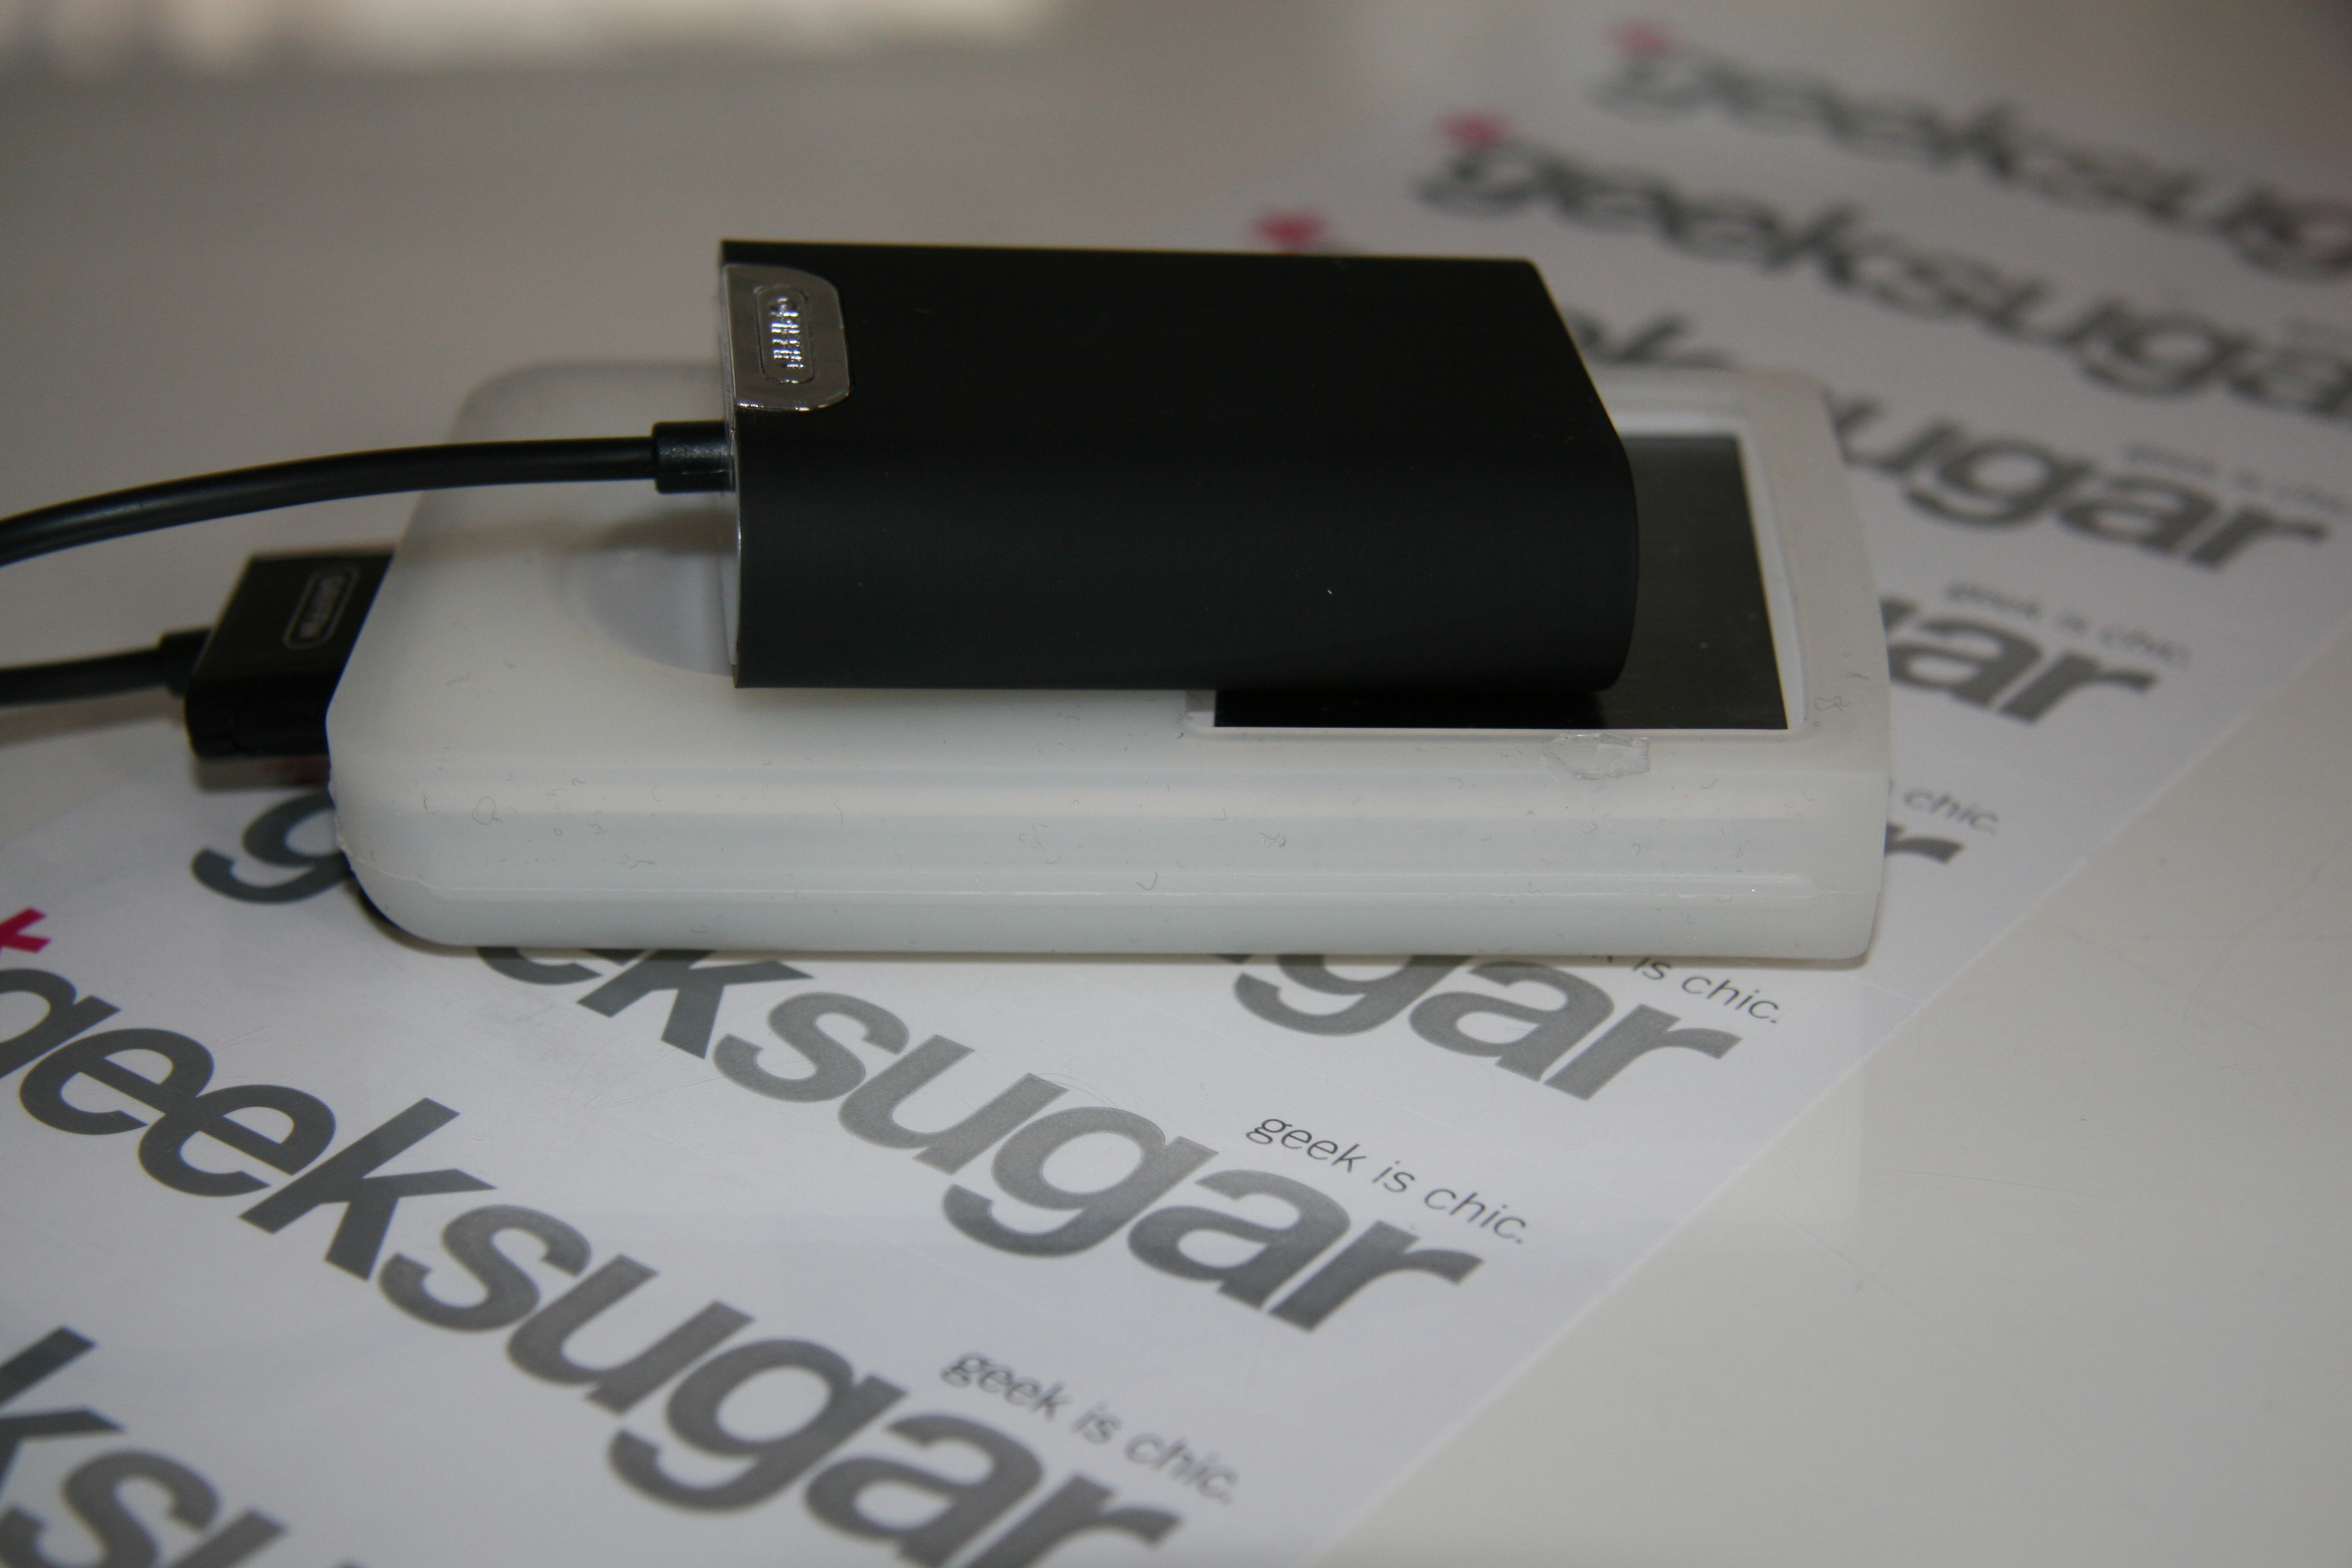 Geeksugar Tests The TuneJuice2